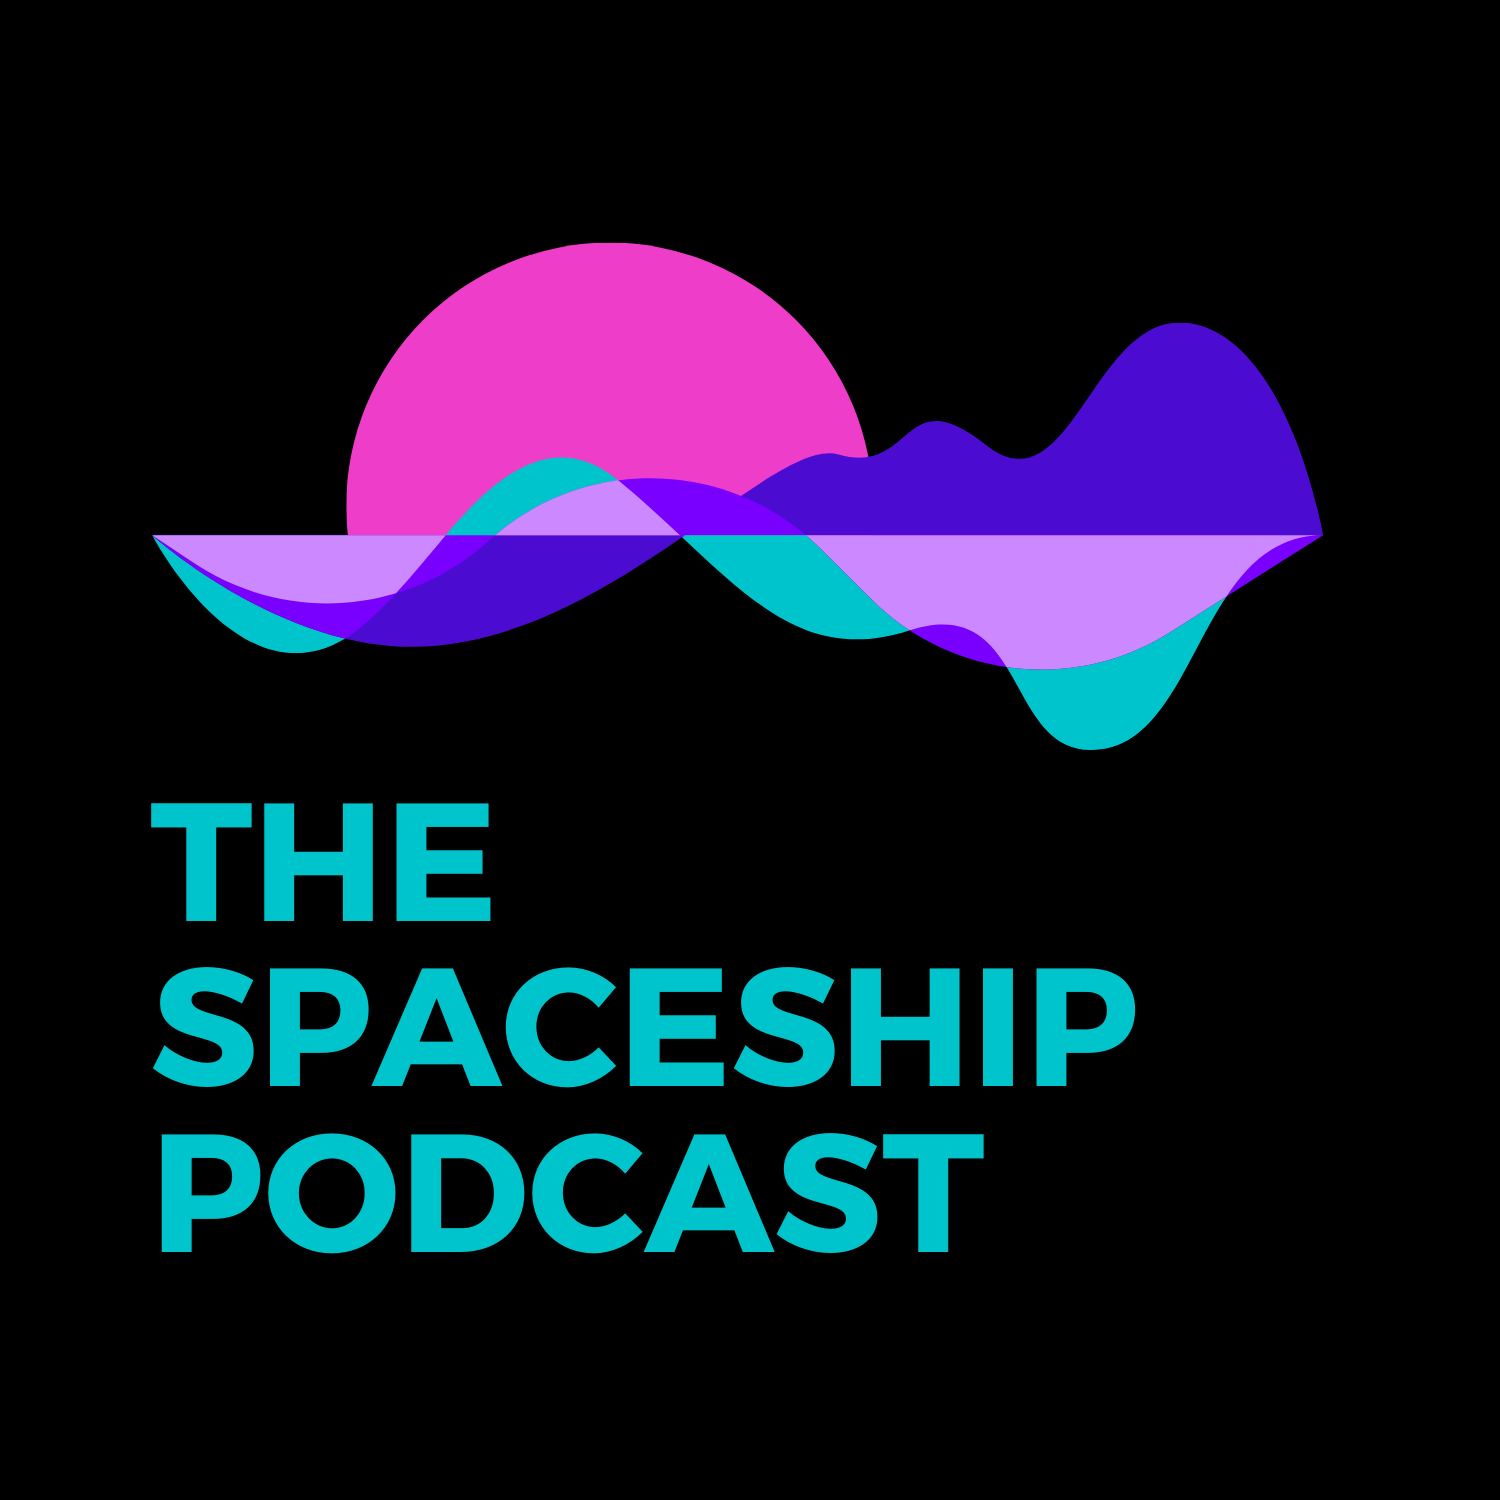 Artwork for podcast The Spaceship Podcast